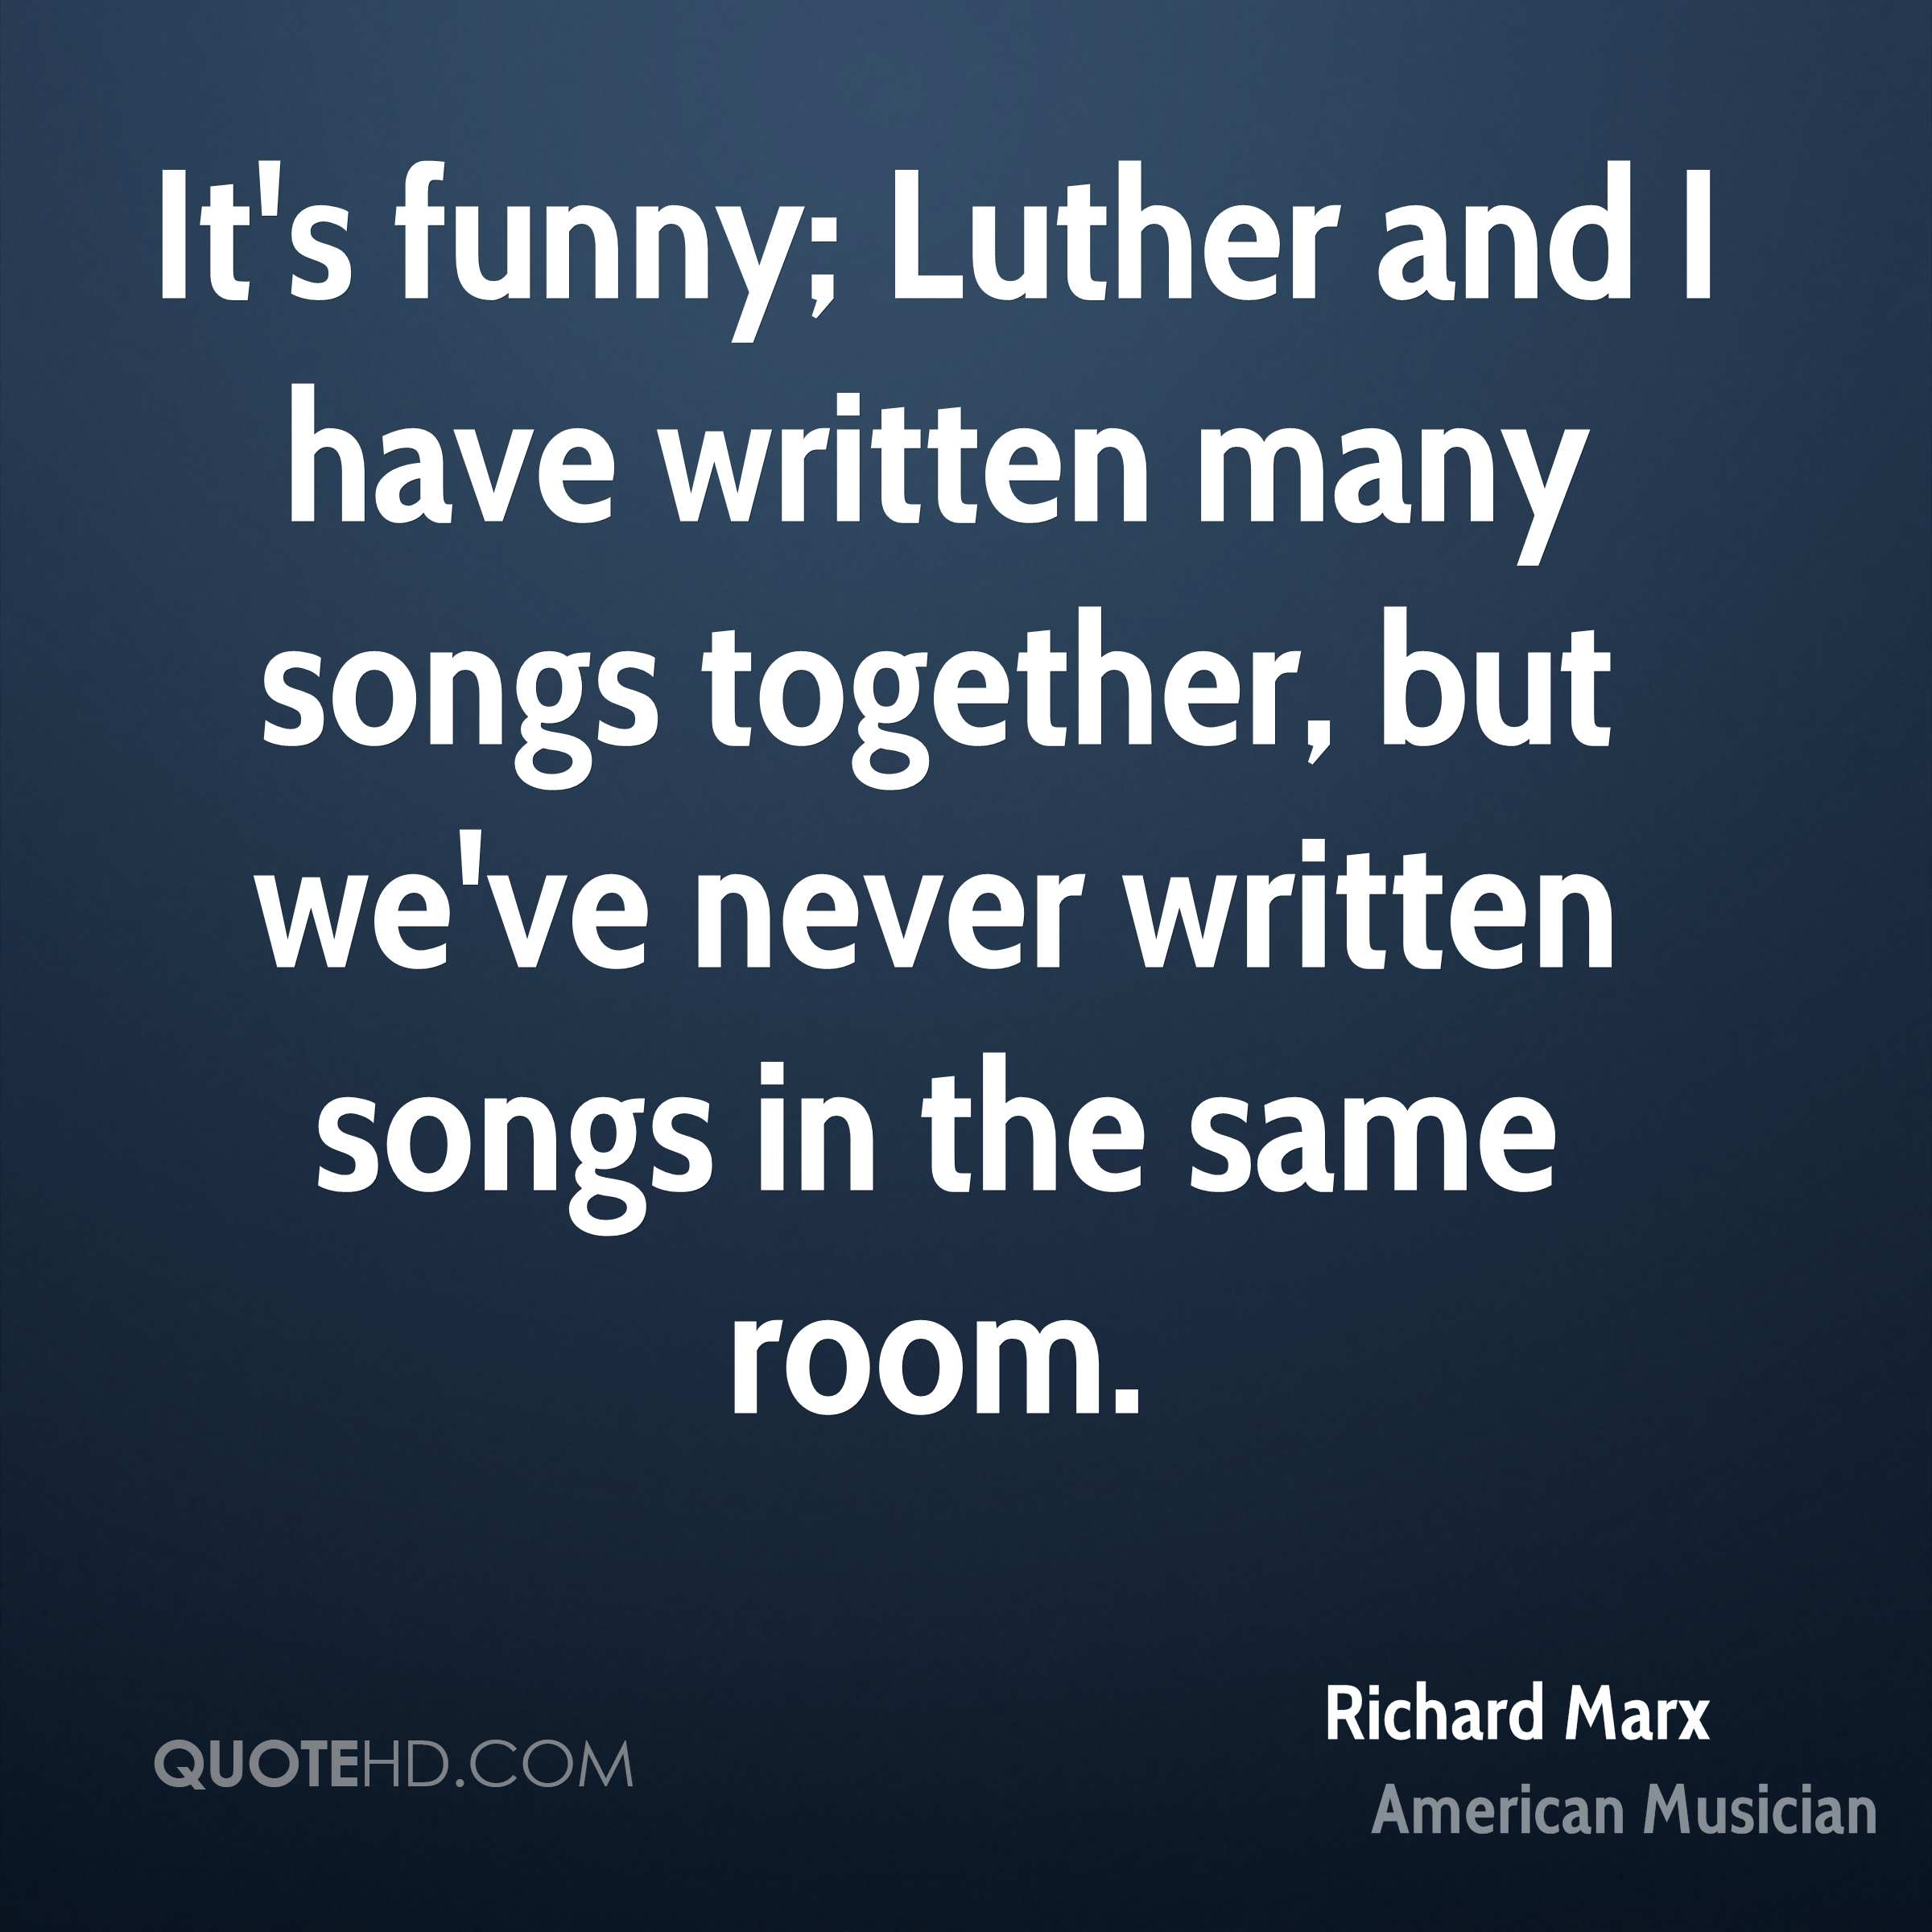 It's funny; Luther and I have written many songs together, but we've never written songs in the same room.